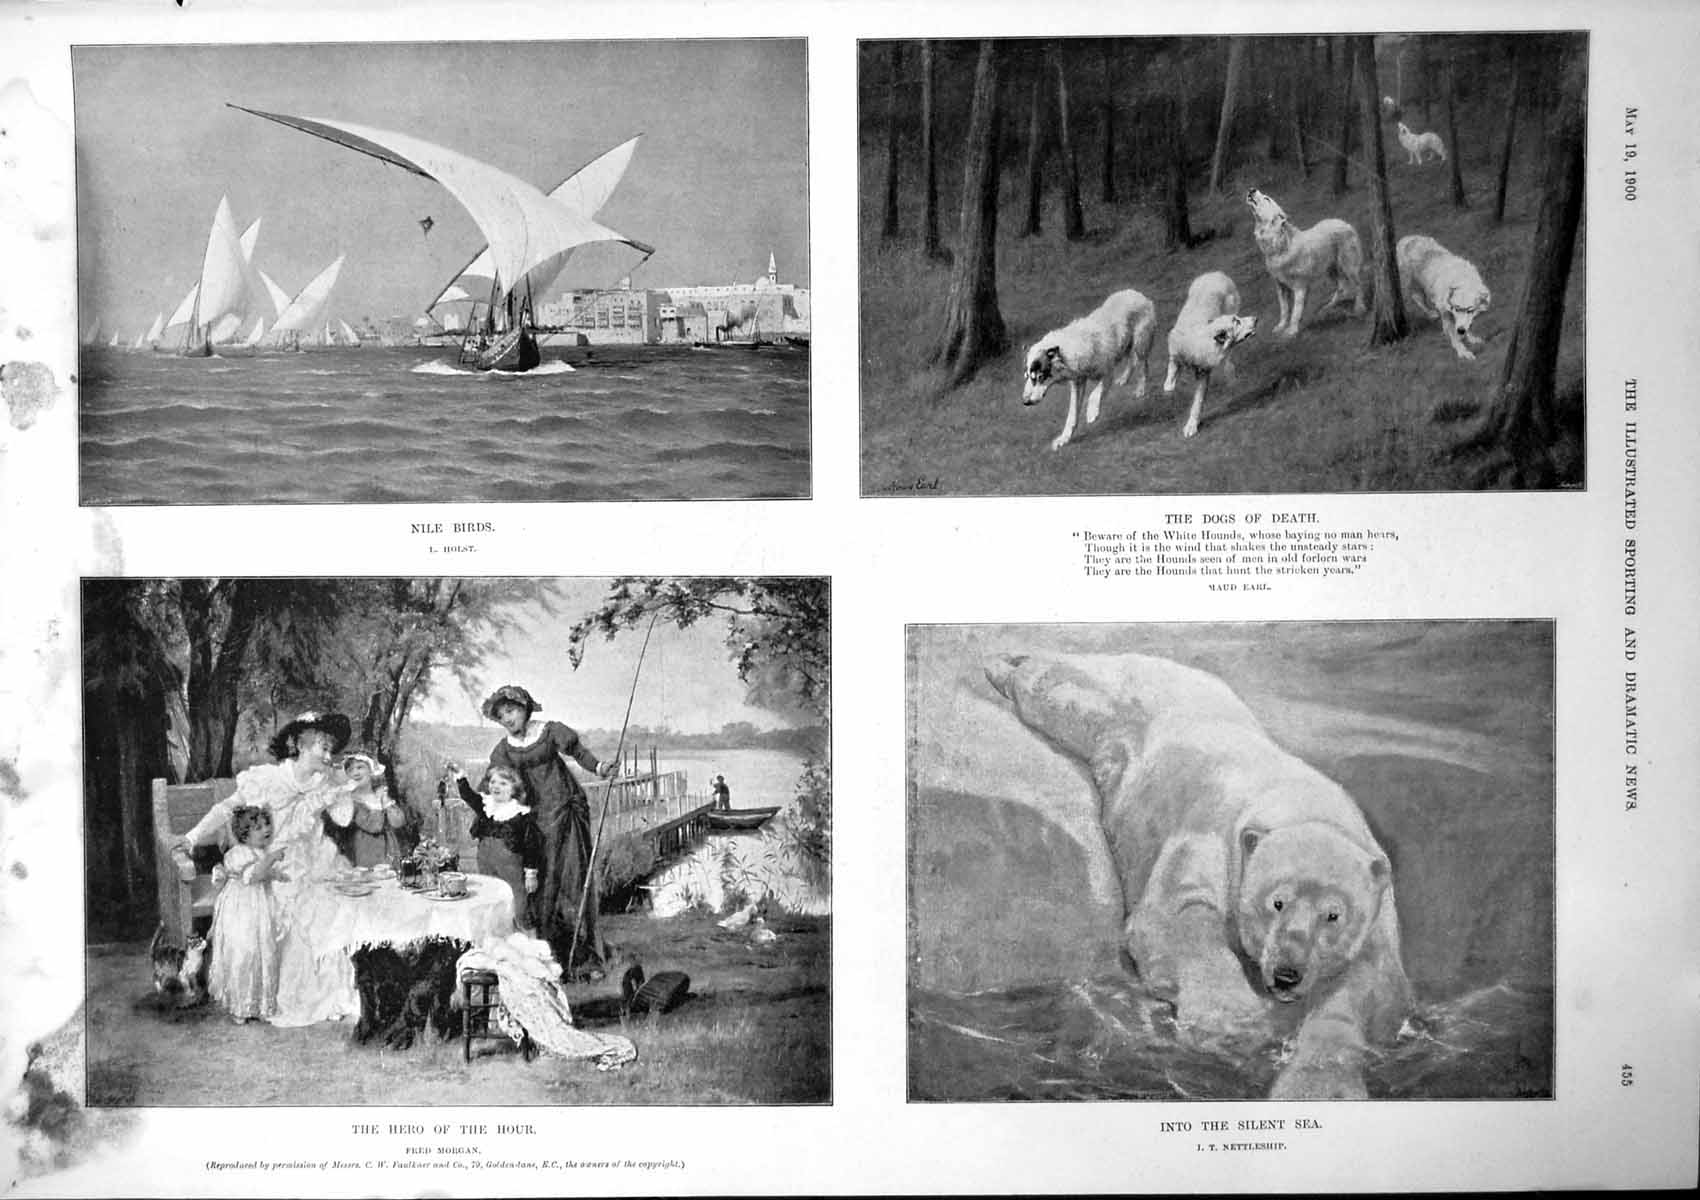 [Print Nile Birds Dogs Death Into Silent Sea Summer 1900 Damaged 845J779 Old Original]